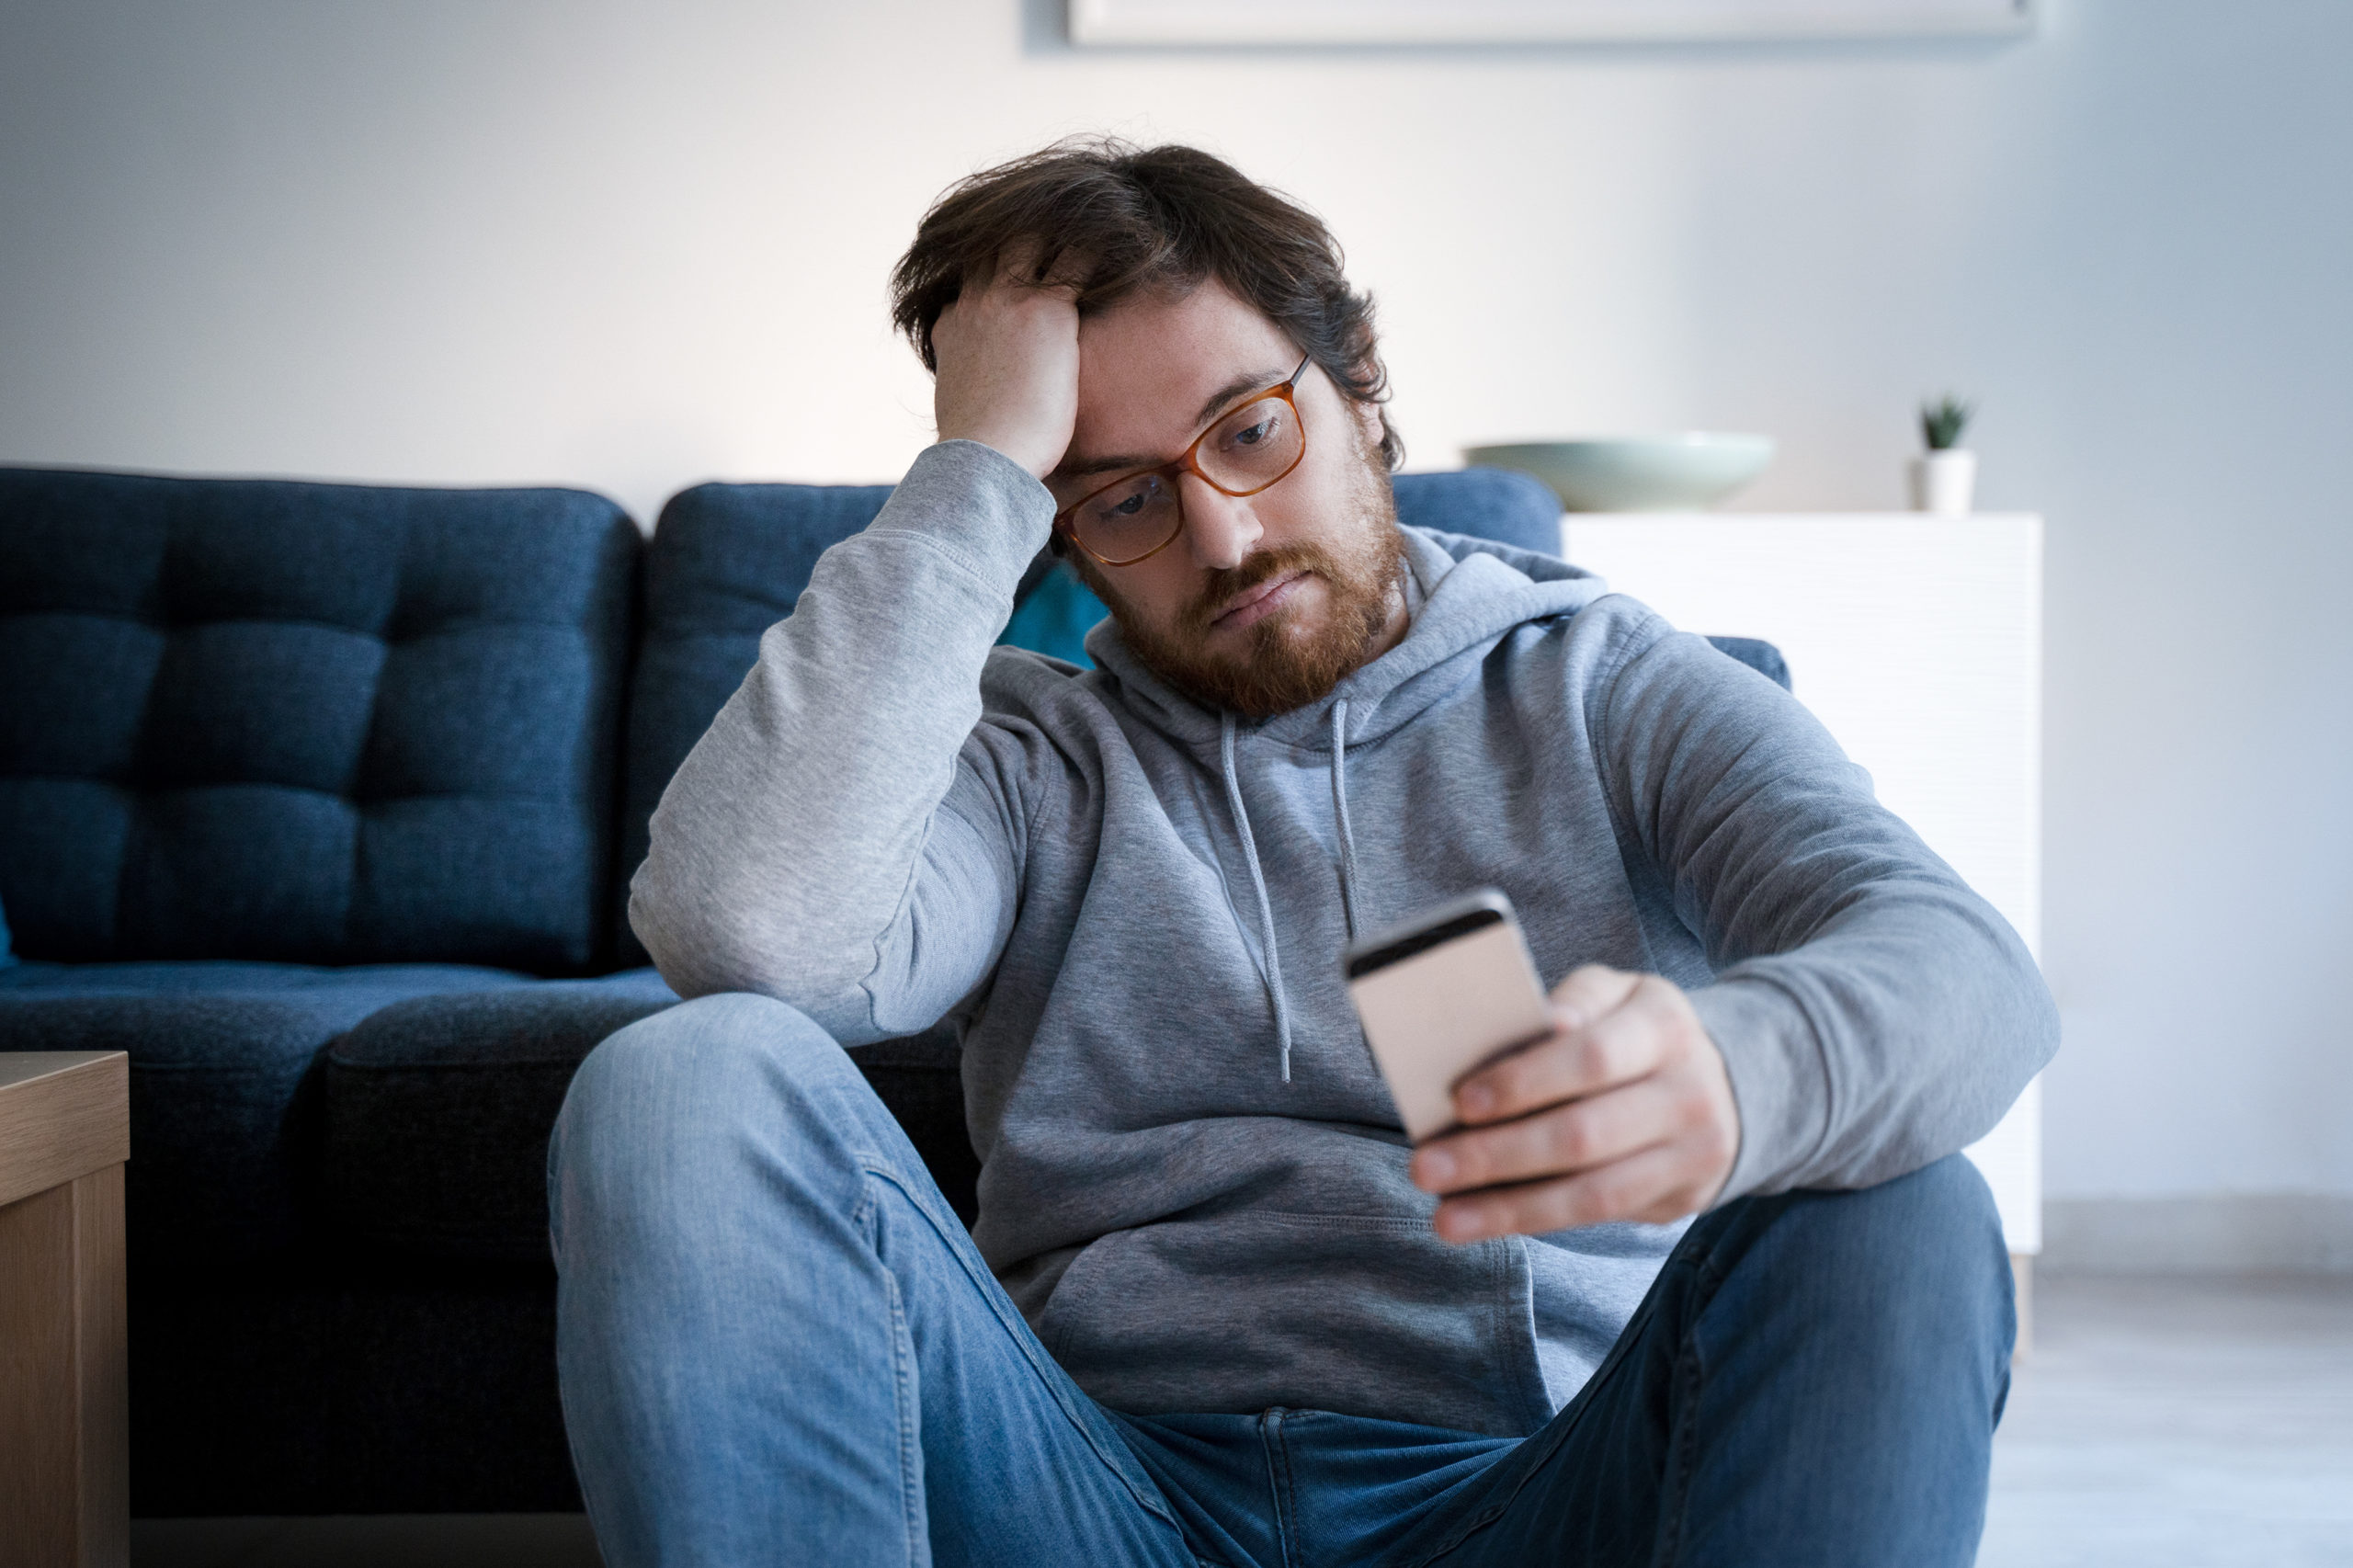 Calls To Addiction Centers Spike During COVID-19